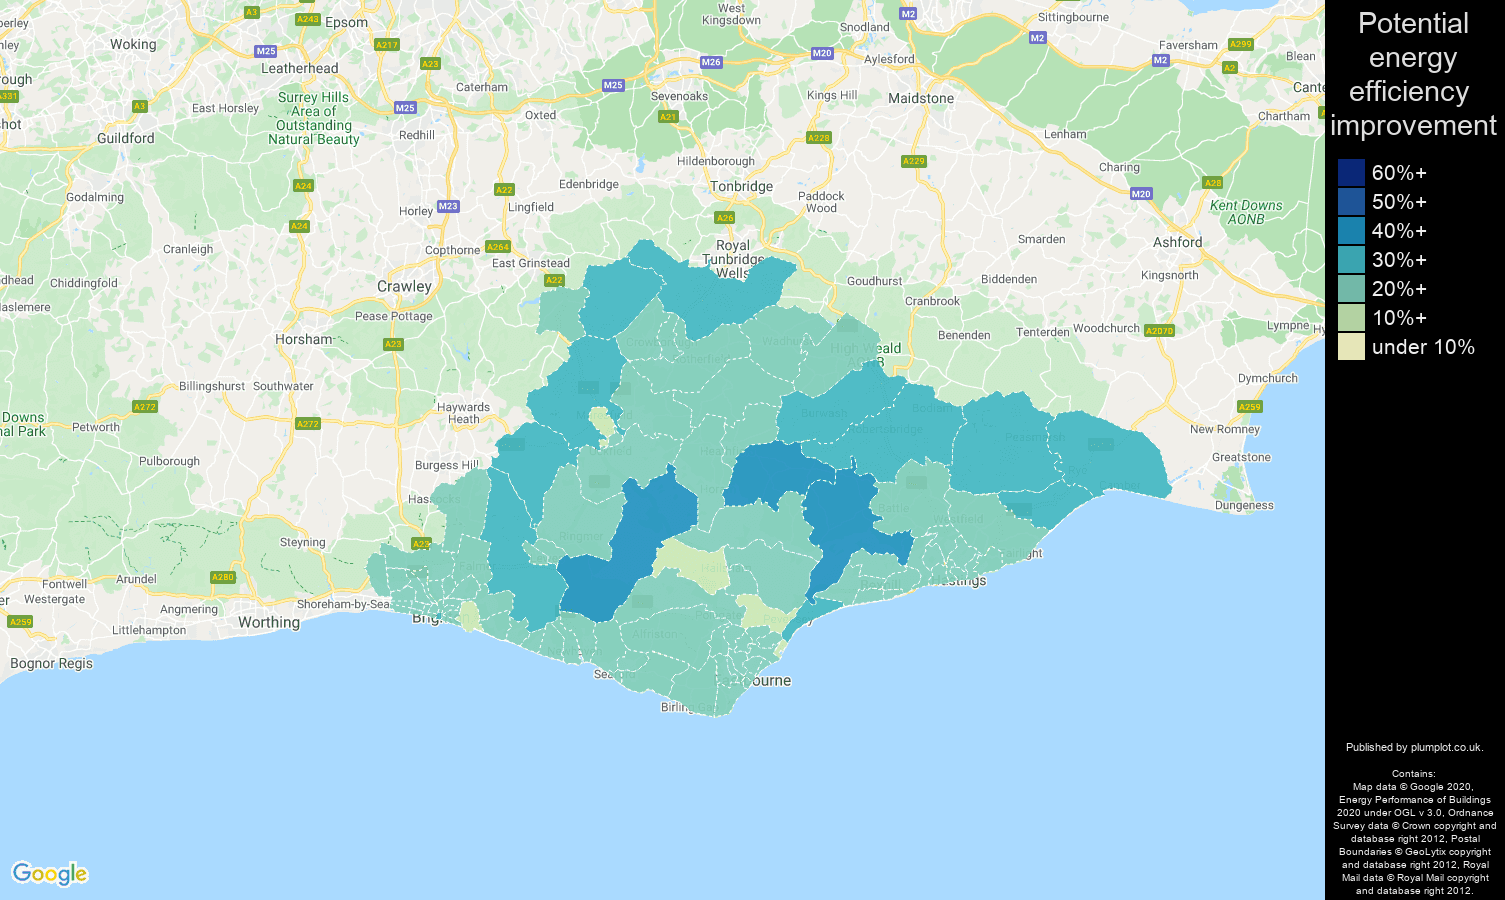 East Sussex map of potential energy efficiency improvement of houses